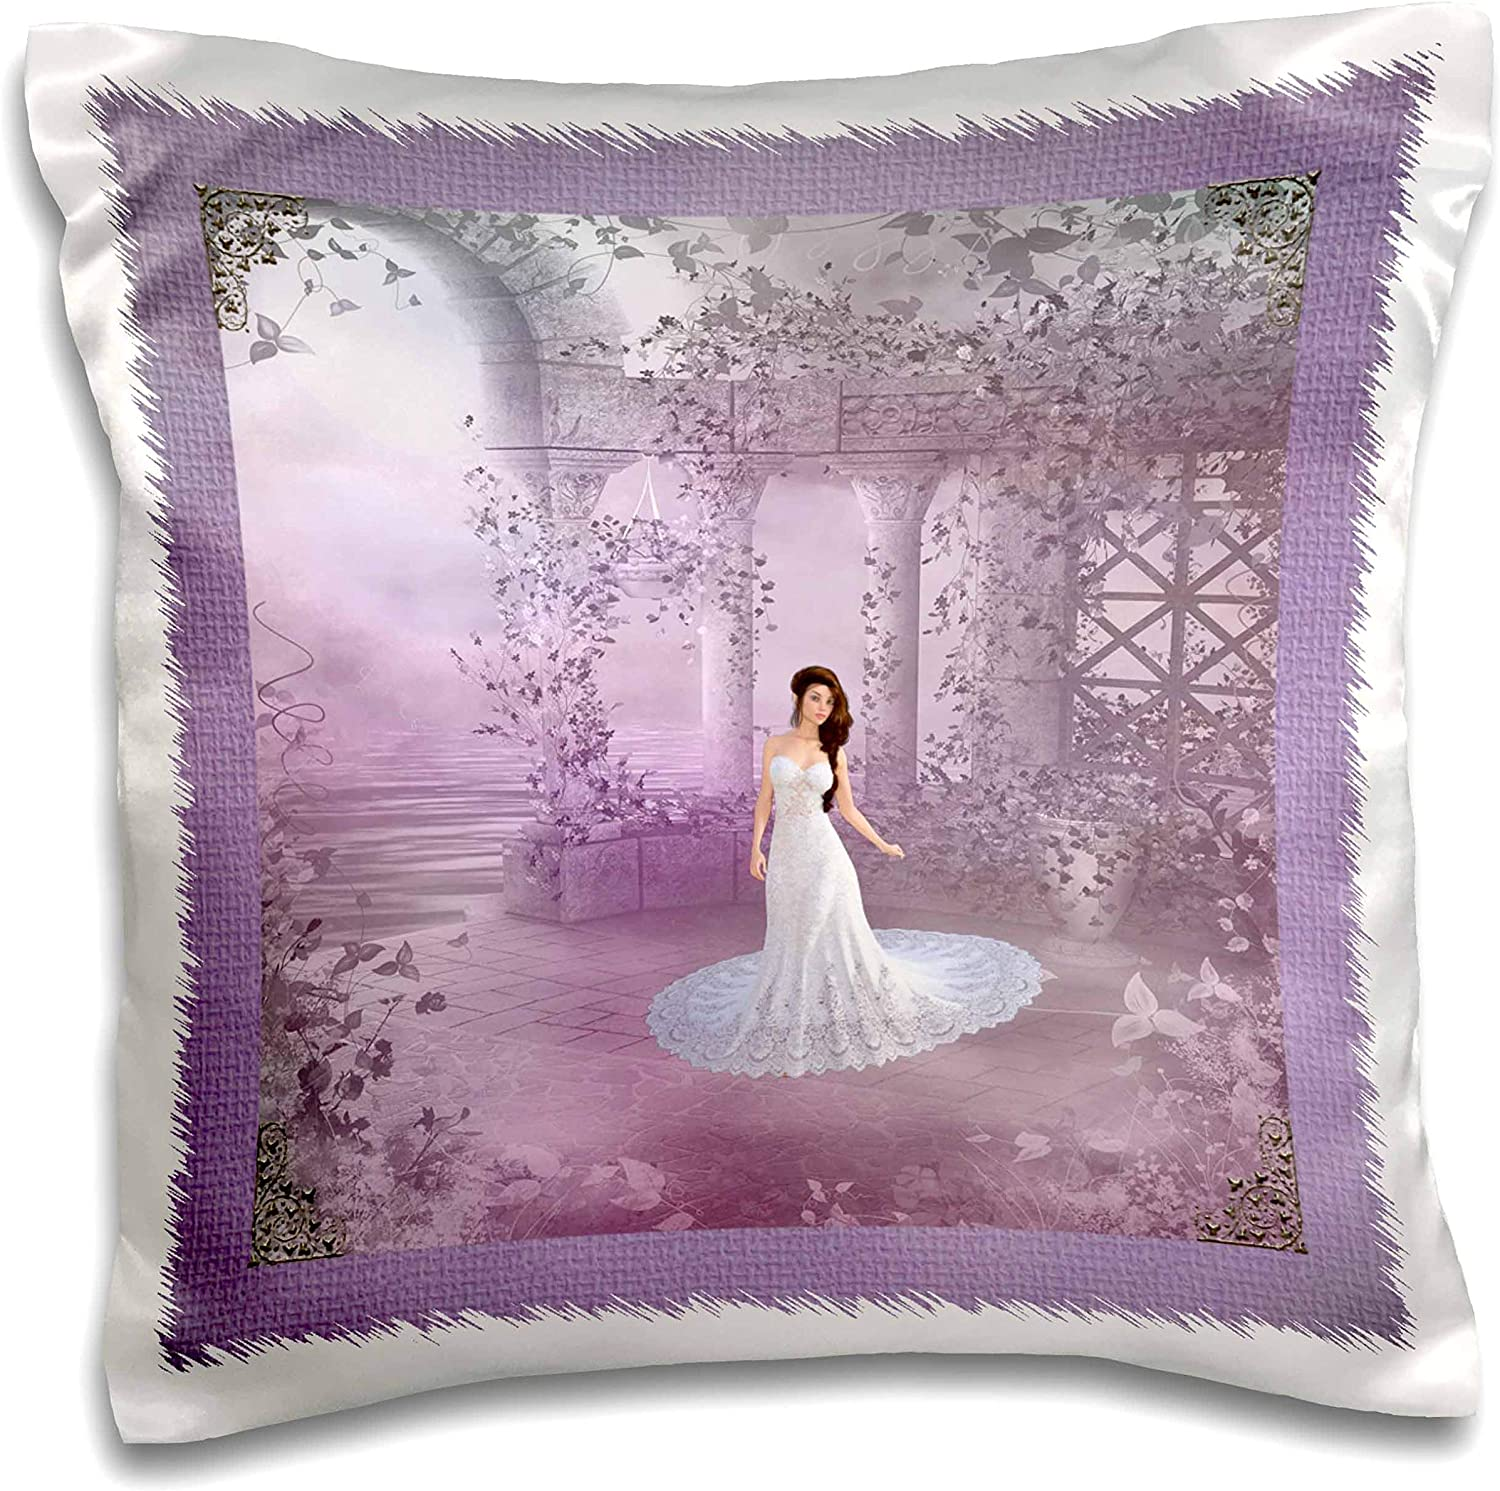 3dRose Image of Bride on the Garden Terrance Lavender Pink White - Pillow Cases (pc_335261_1)